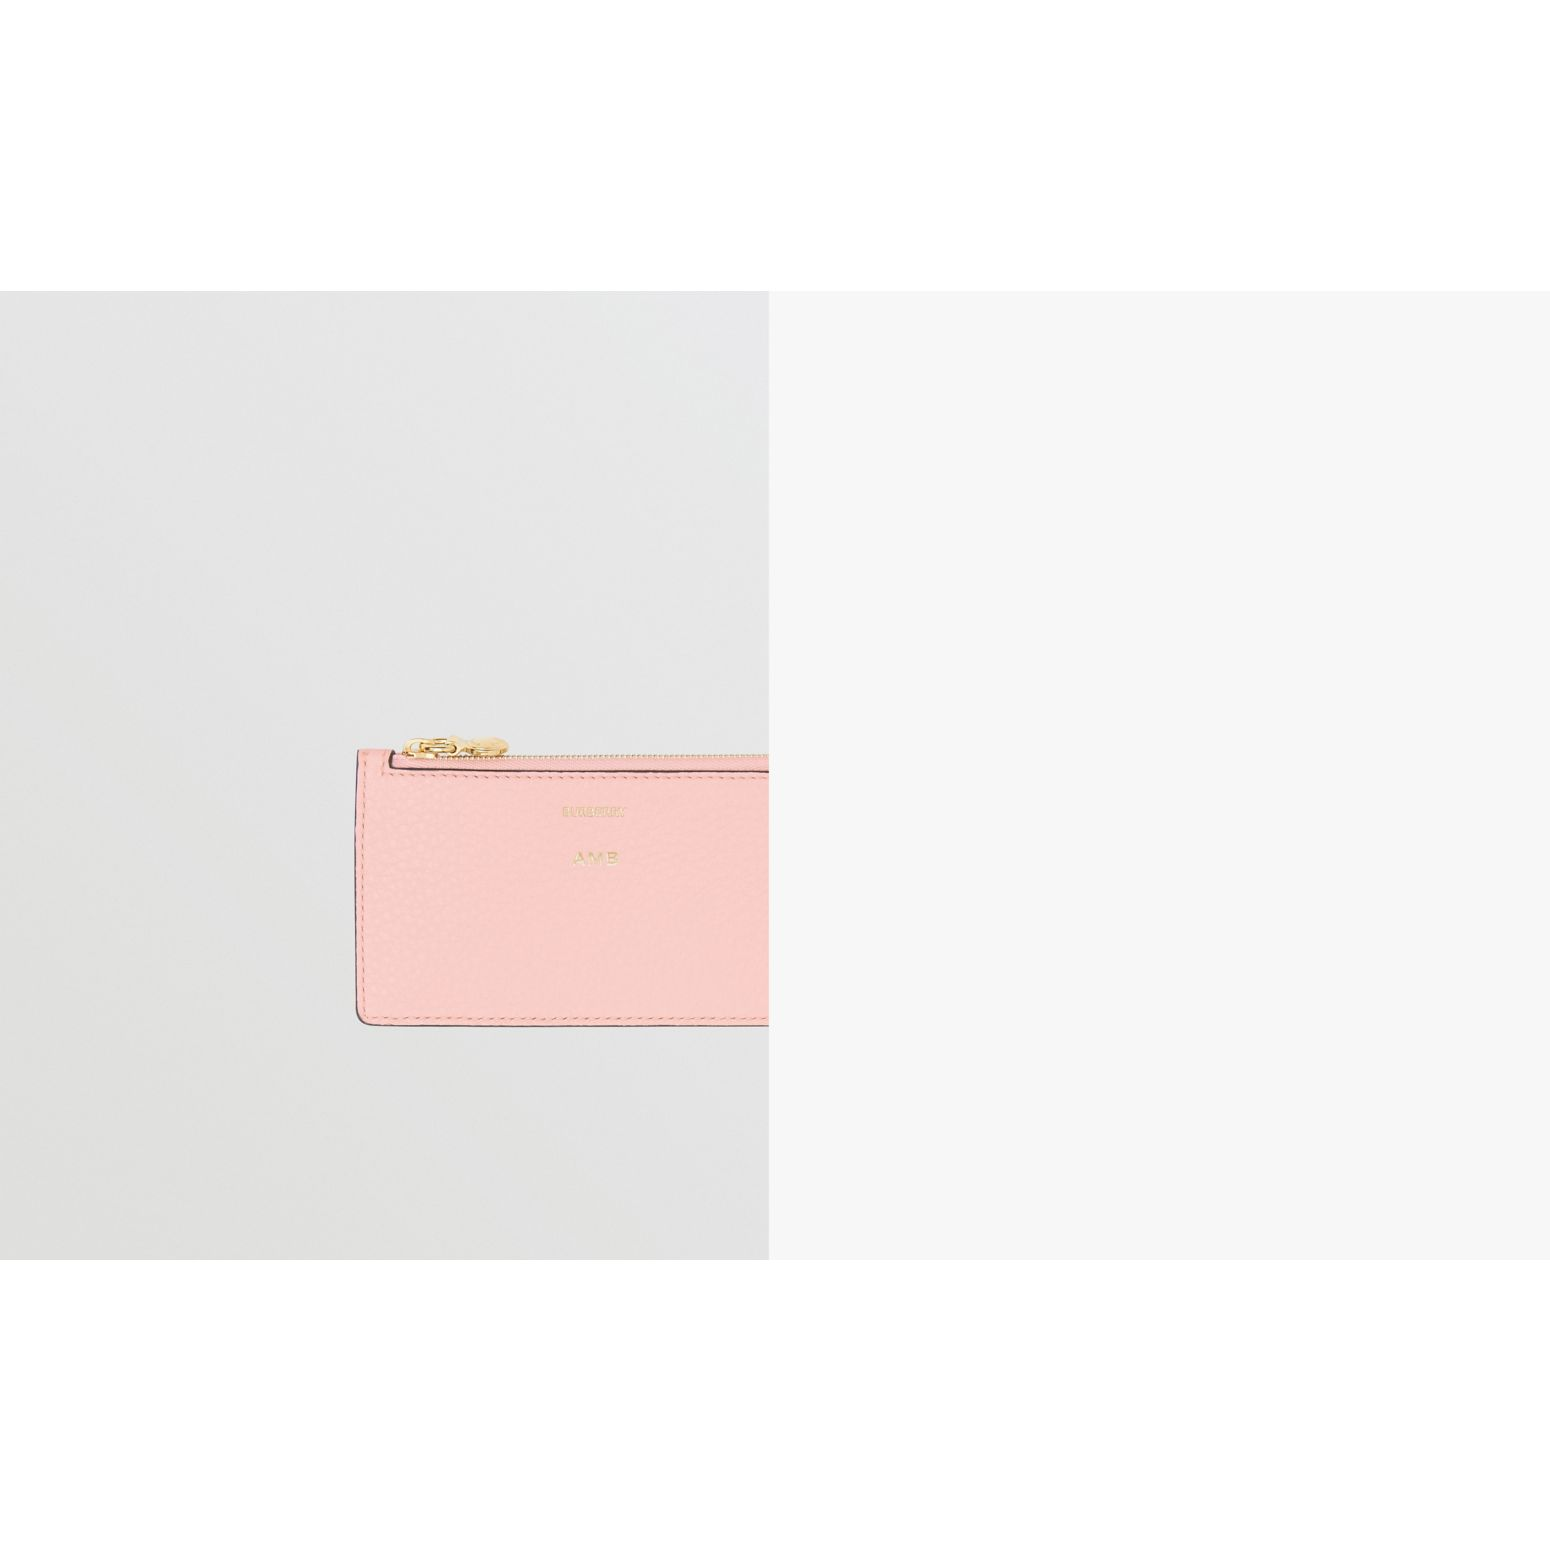 Porte-cartes zippé en cuir (Rose Platiné Pâle) | Burberry - photo de la galerie 1